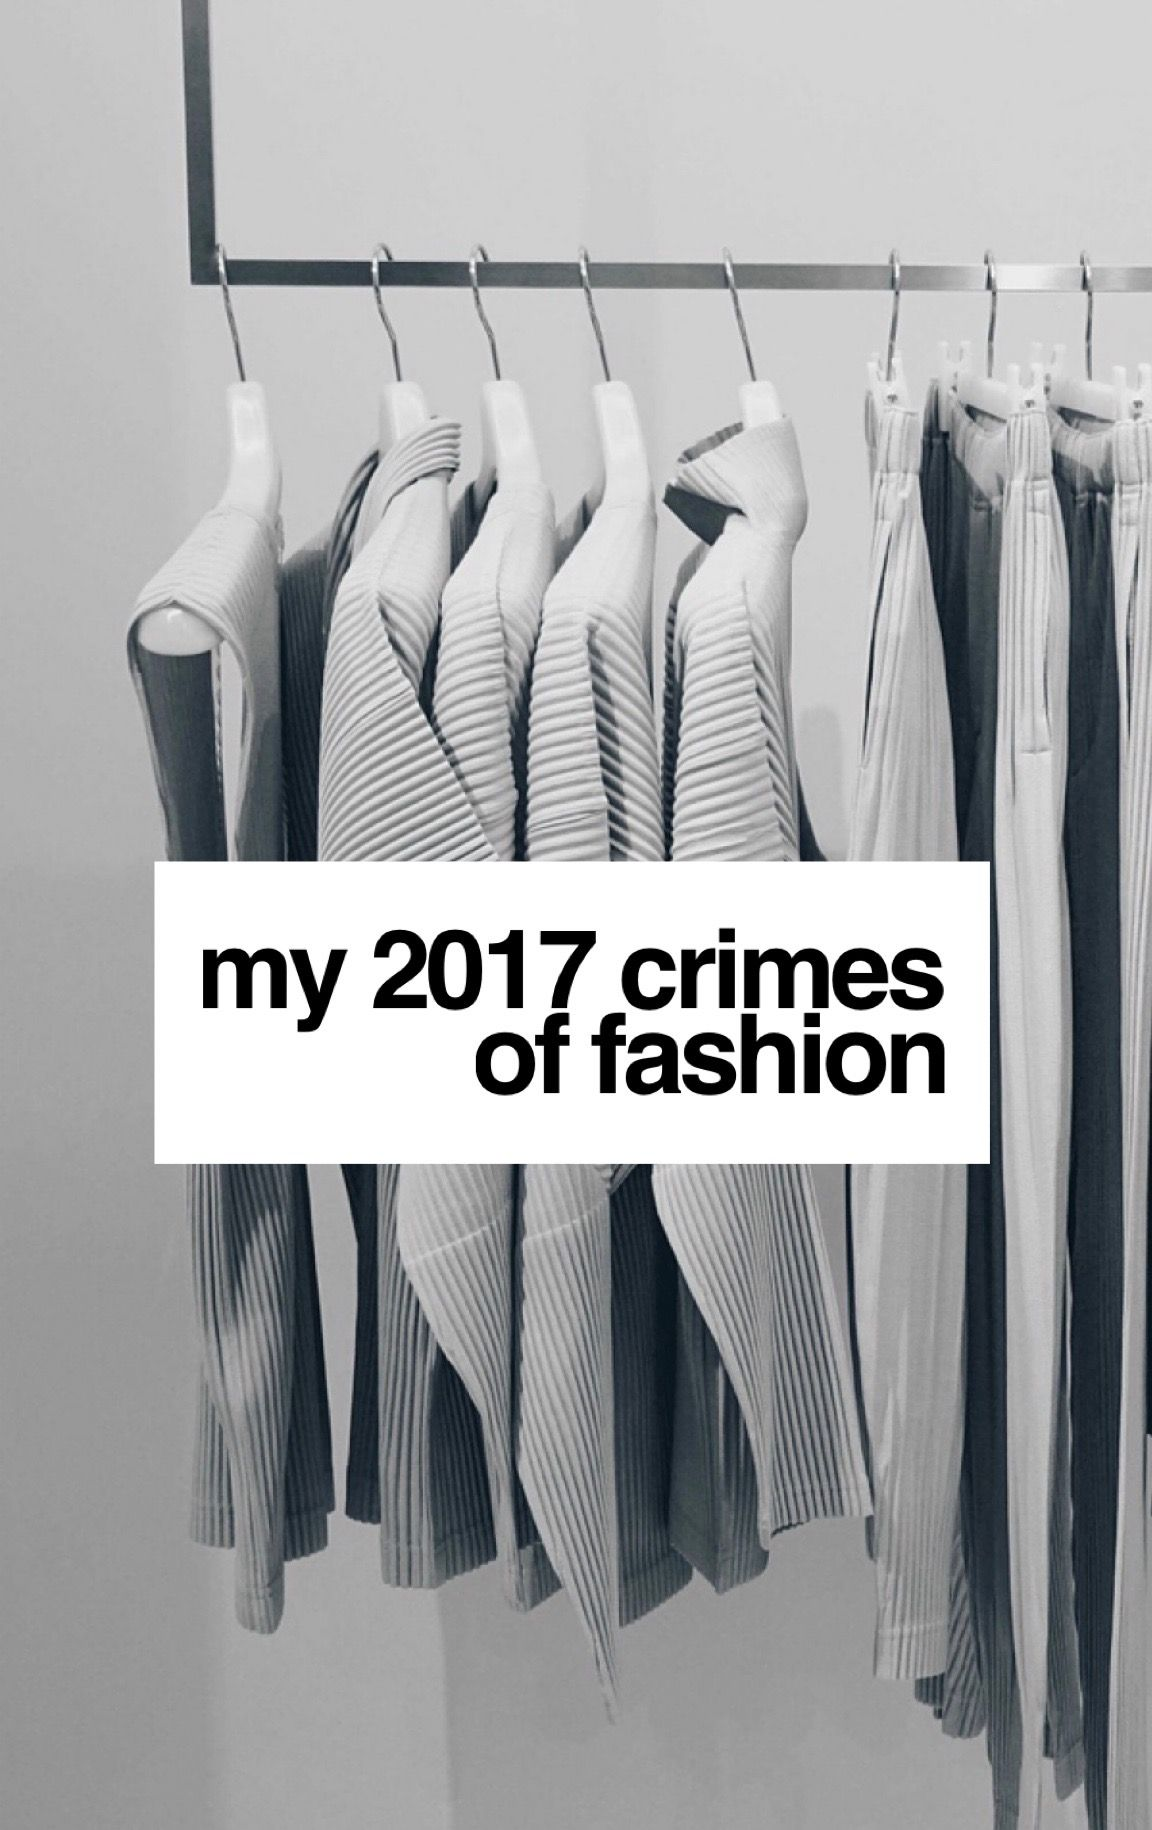 Cool Bad Trends 2017 Ideen Von The Worst Fashion Of This Year!